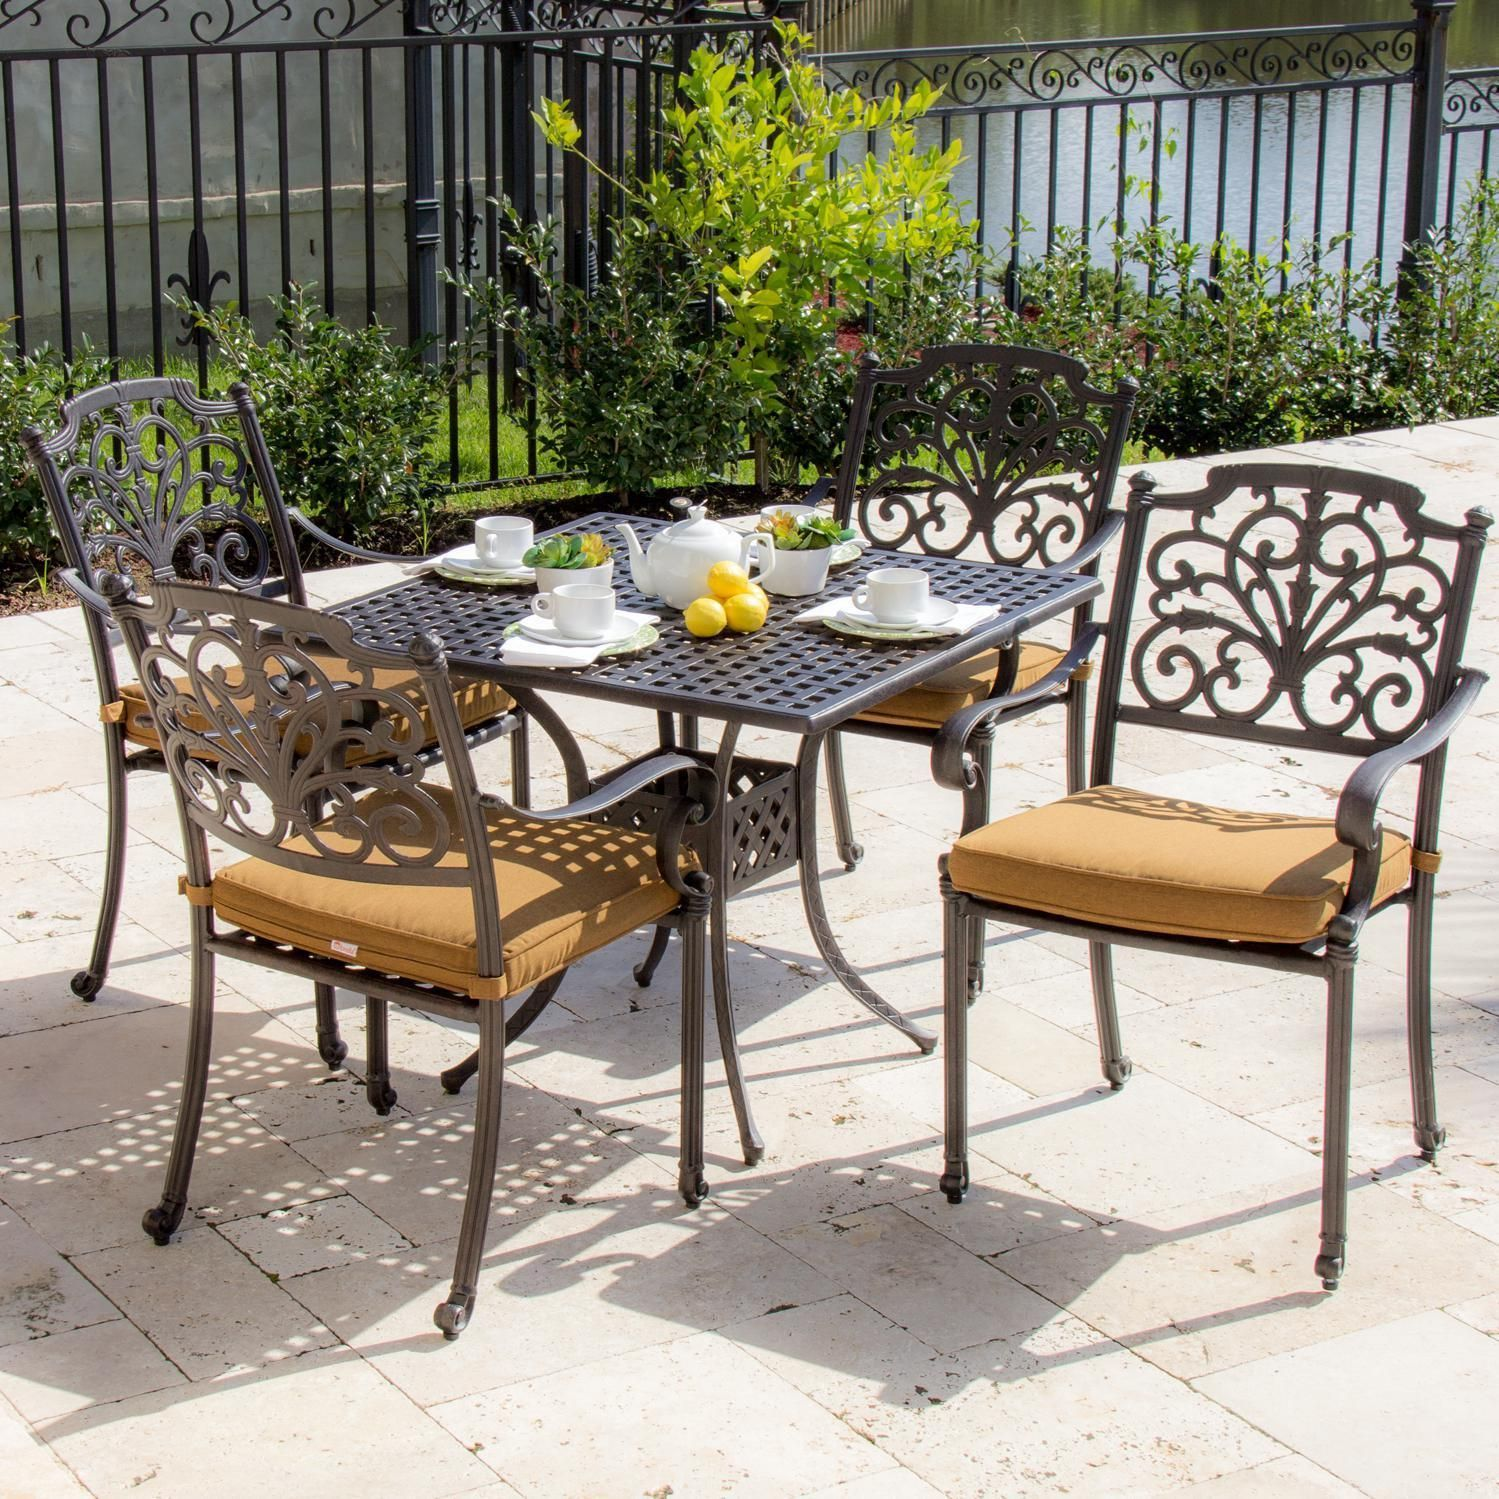 Lakeview Outdoor Designs Evangeline Cast Aluminum 4 Person Patio